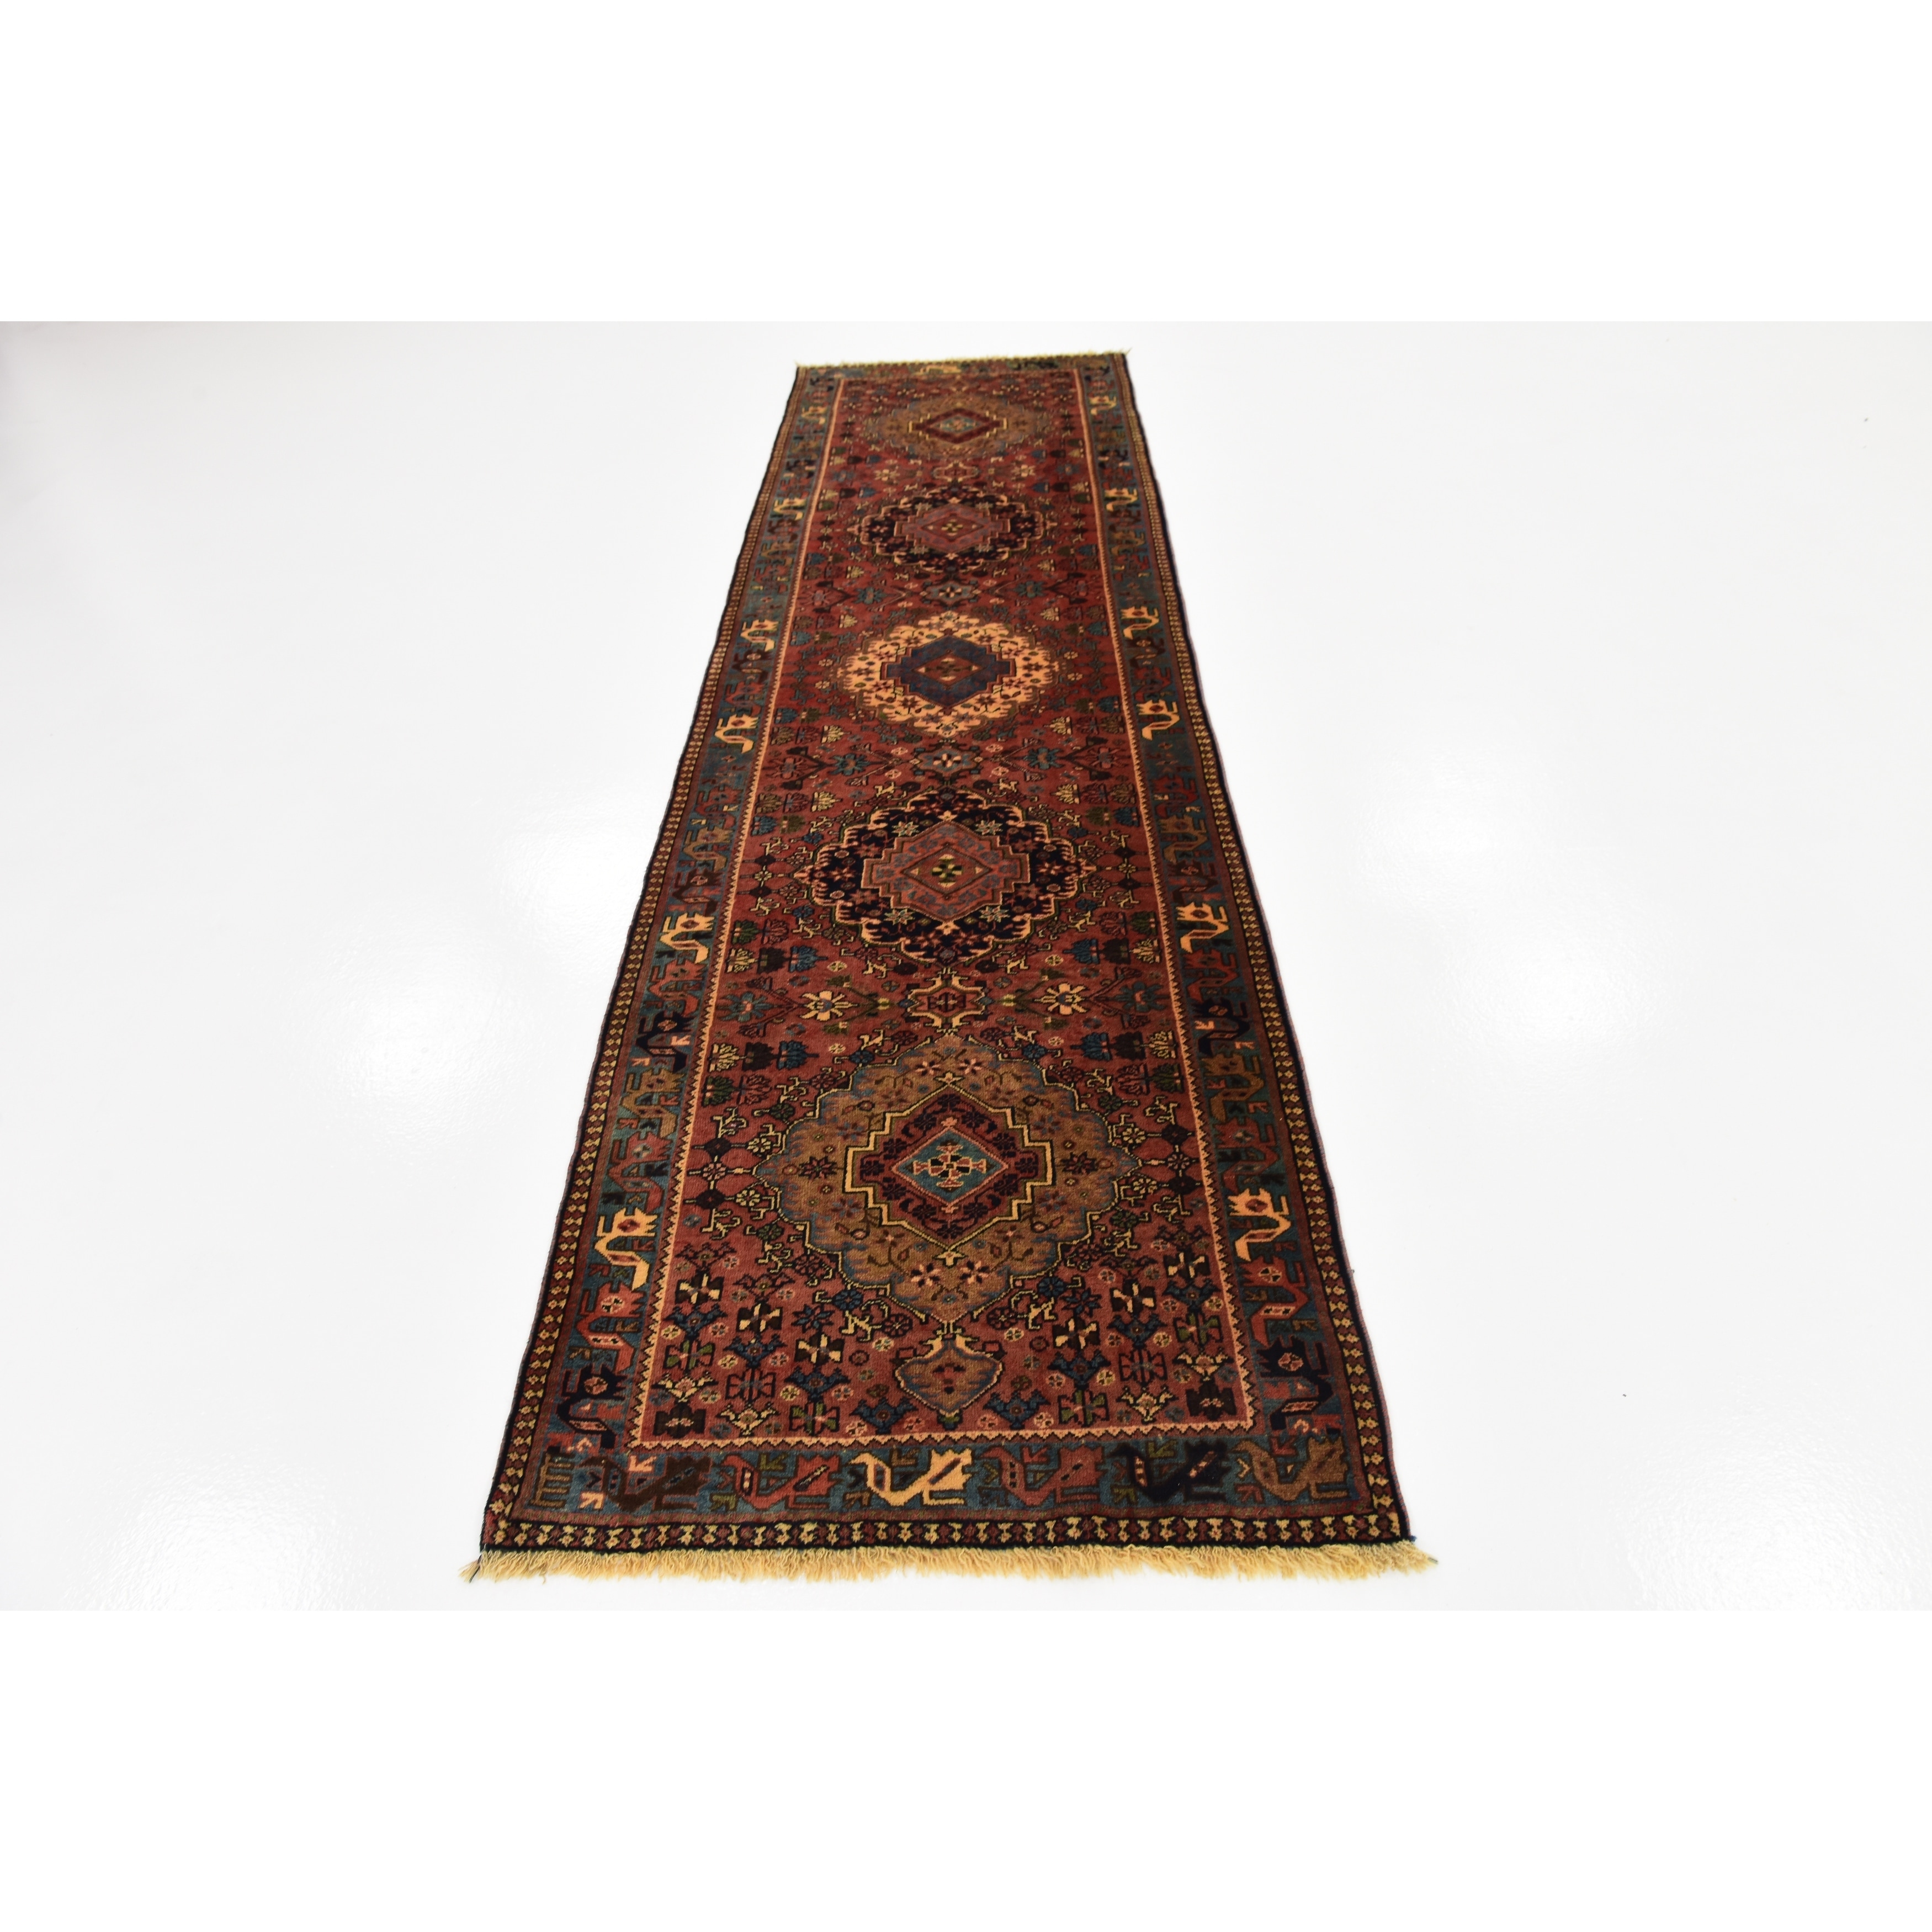 Shop Hand Knotted Yalameh Wool Runner Rug - 2' 10 x 10' 2 - On Sale - Free Shipping Today - Overstock.com - 24100530